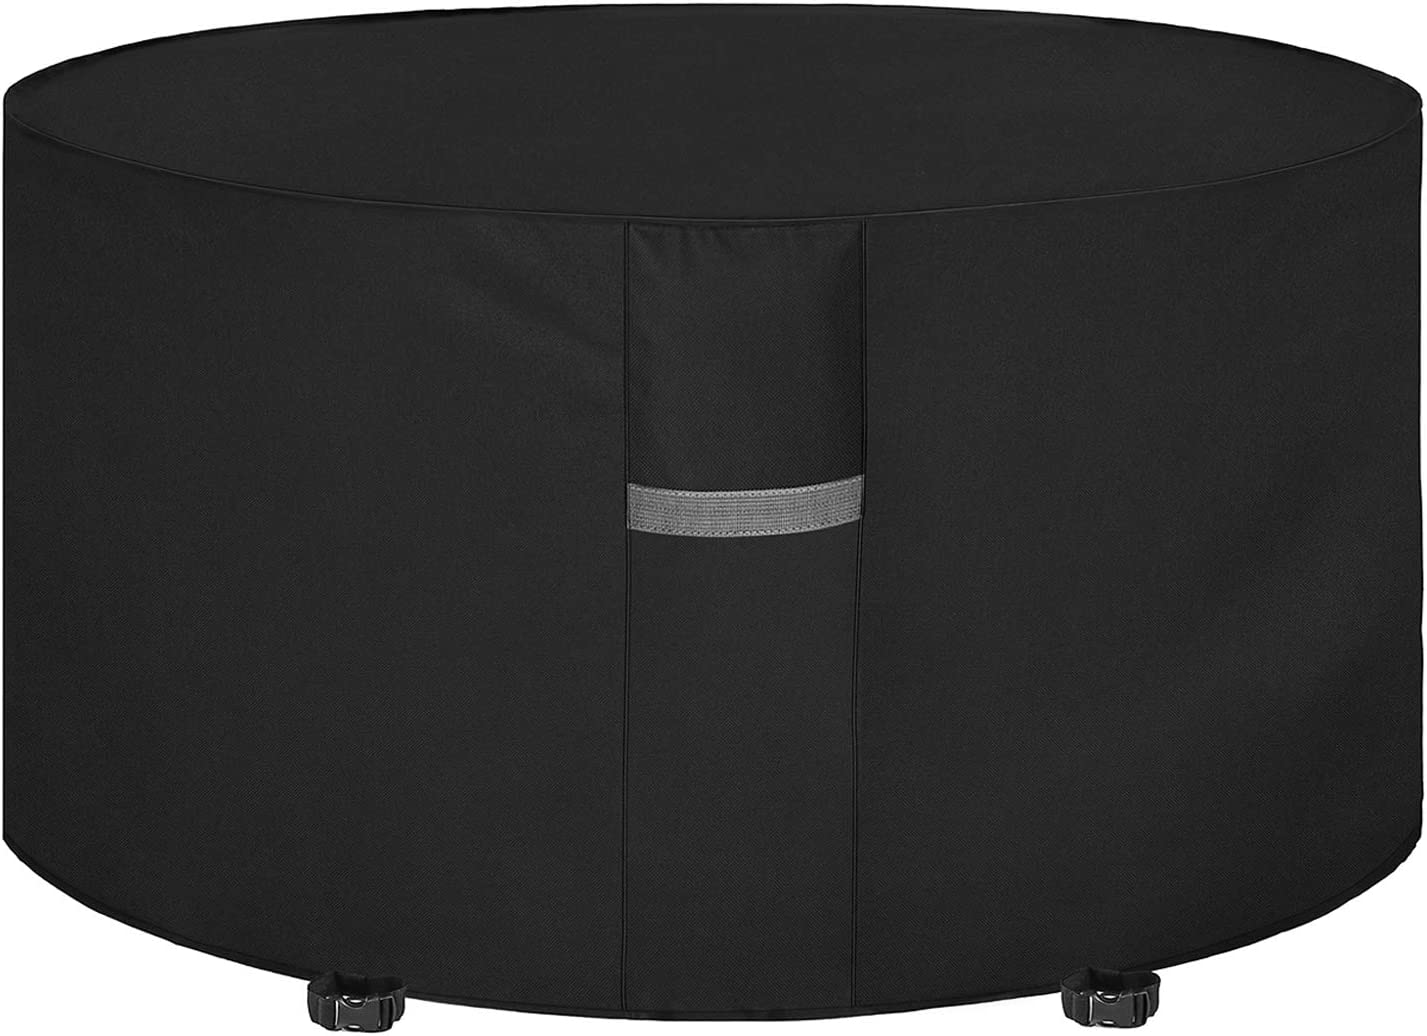 Dokon Garden Table Cover with Air Vent, Waterproof, Windproof, Anti-UV,  Heavy Duty Rip Proof 10D Oxford Fabric Patio Set Cover, Garden Furniture